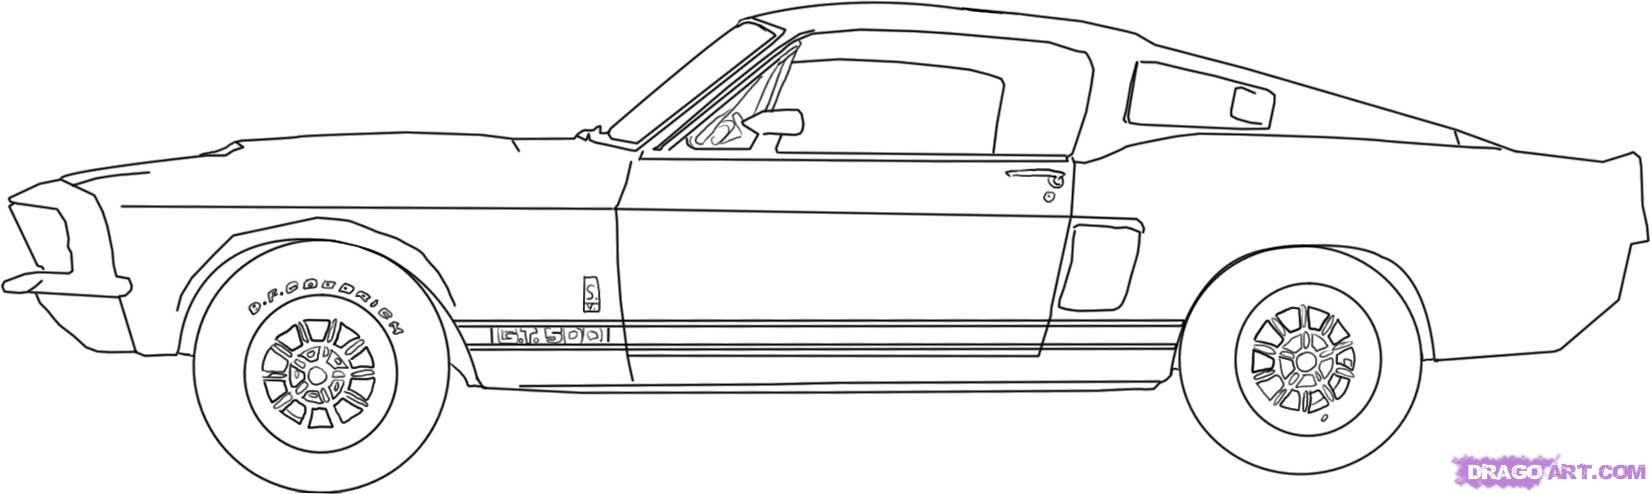 Comme dessiner l'automobile Shelby Mustang GT500 de 1967 par le crayon progressivement